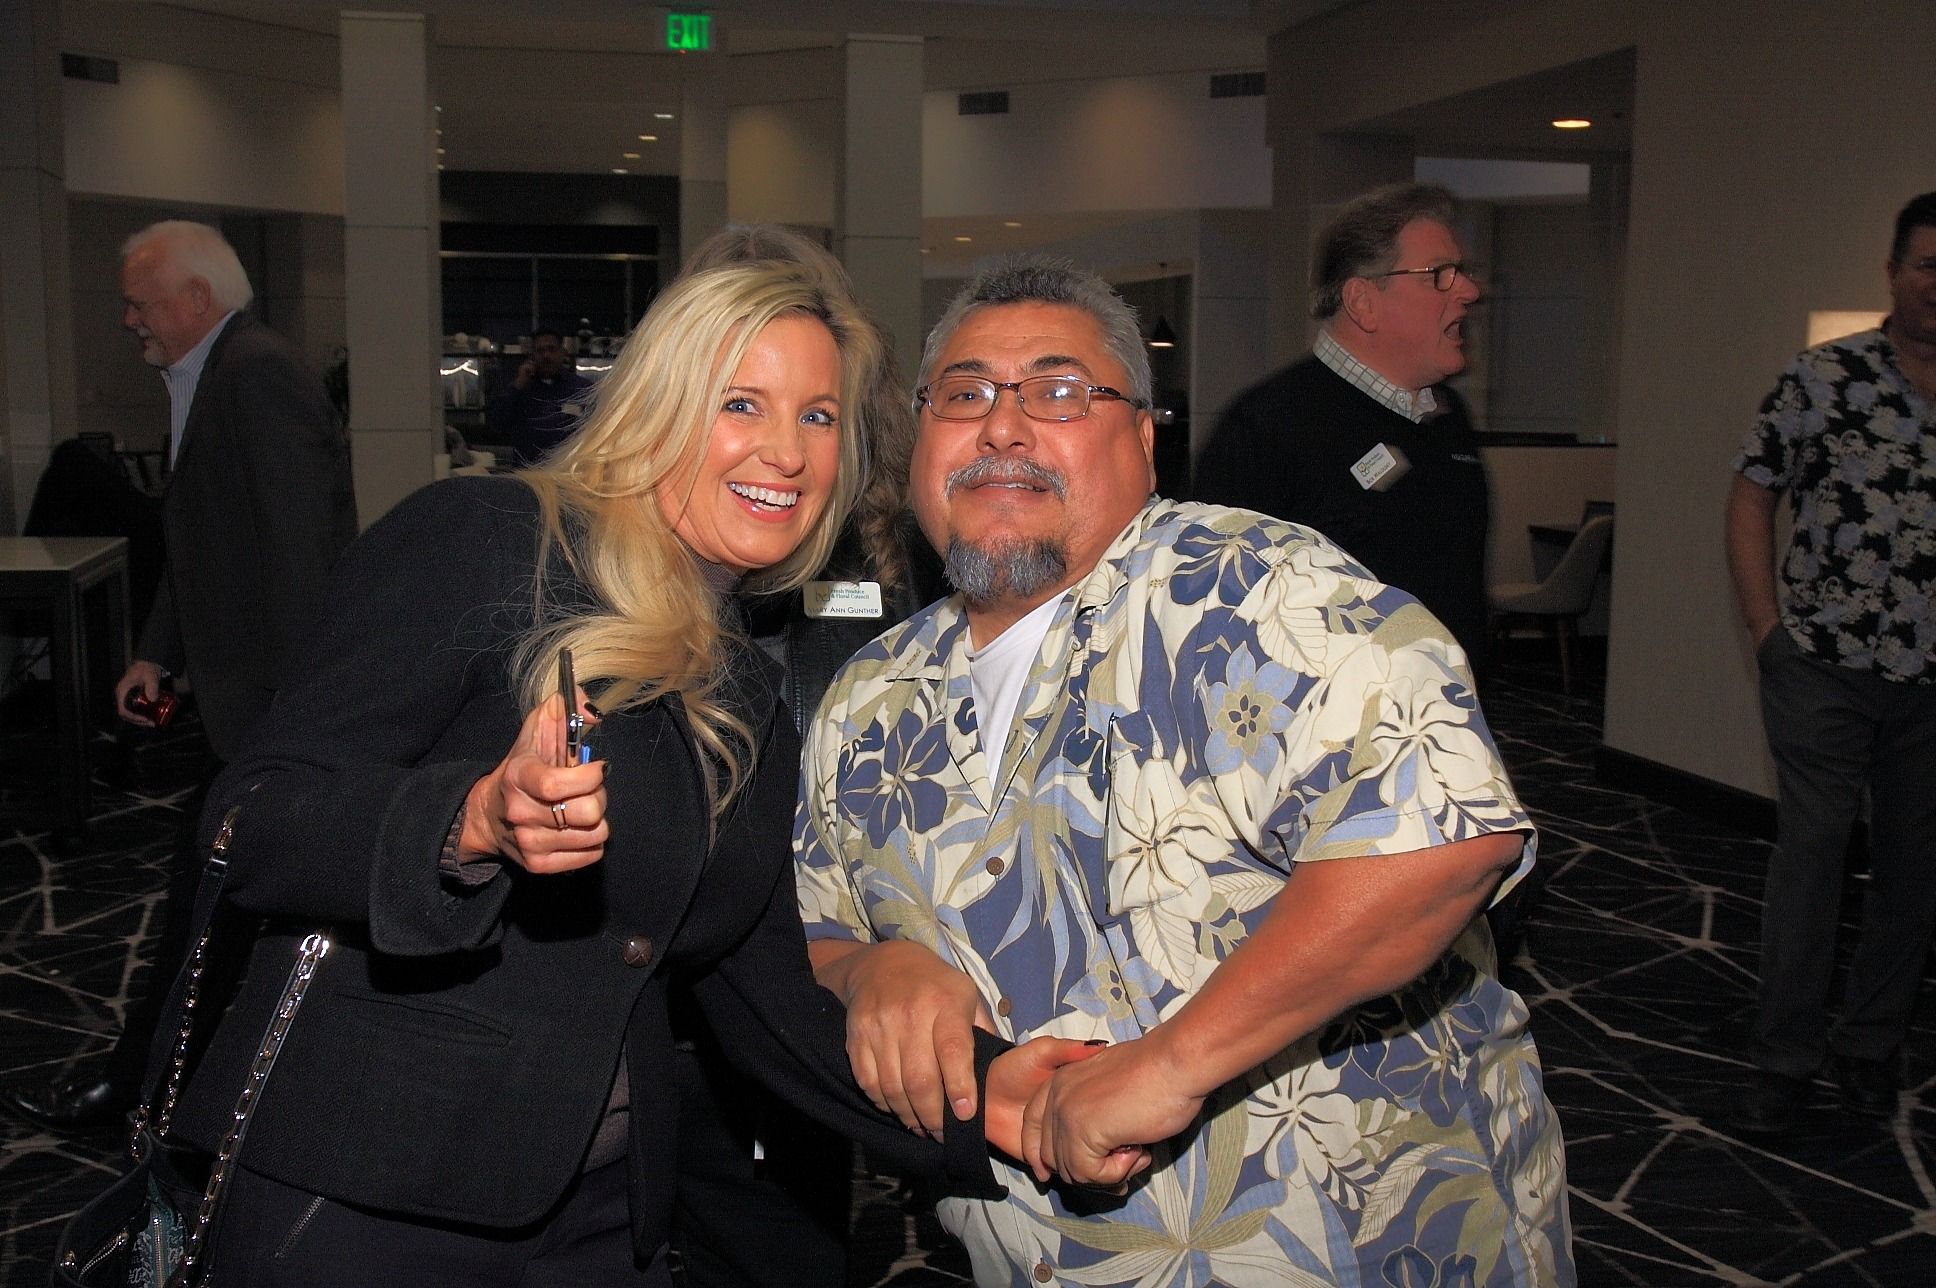 Krystin Lawson with Mike Rodriguez from Perimeter Sales & Merchandising